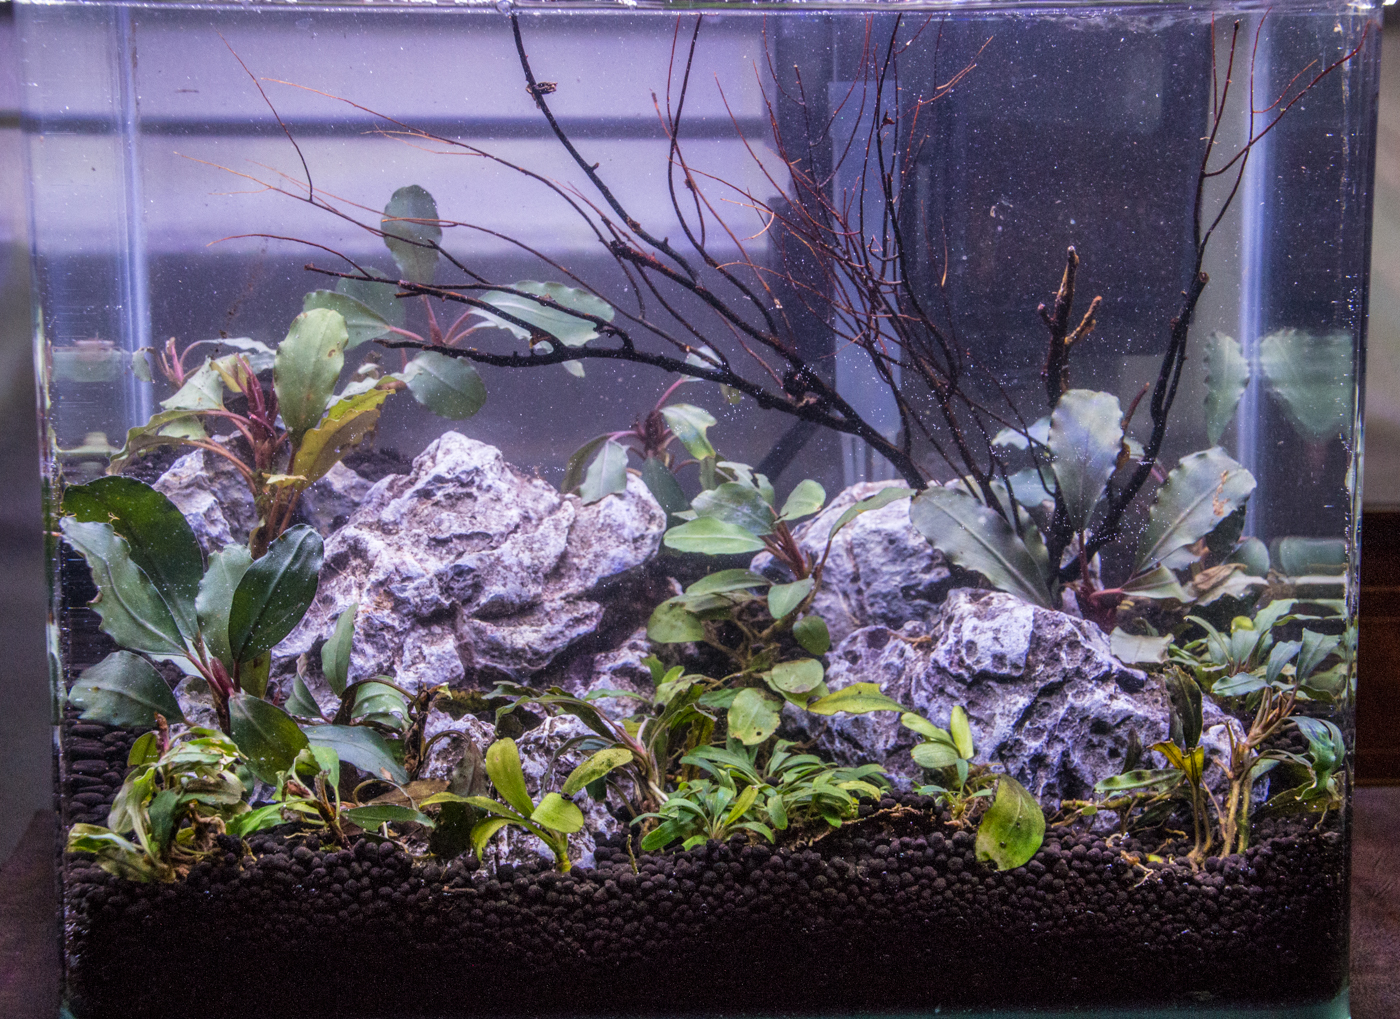 And there you are with another nice, clean tank!